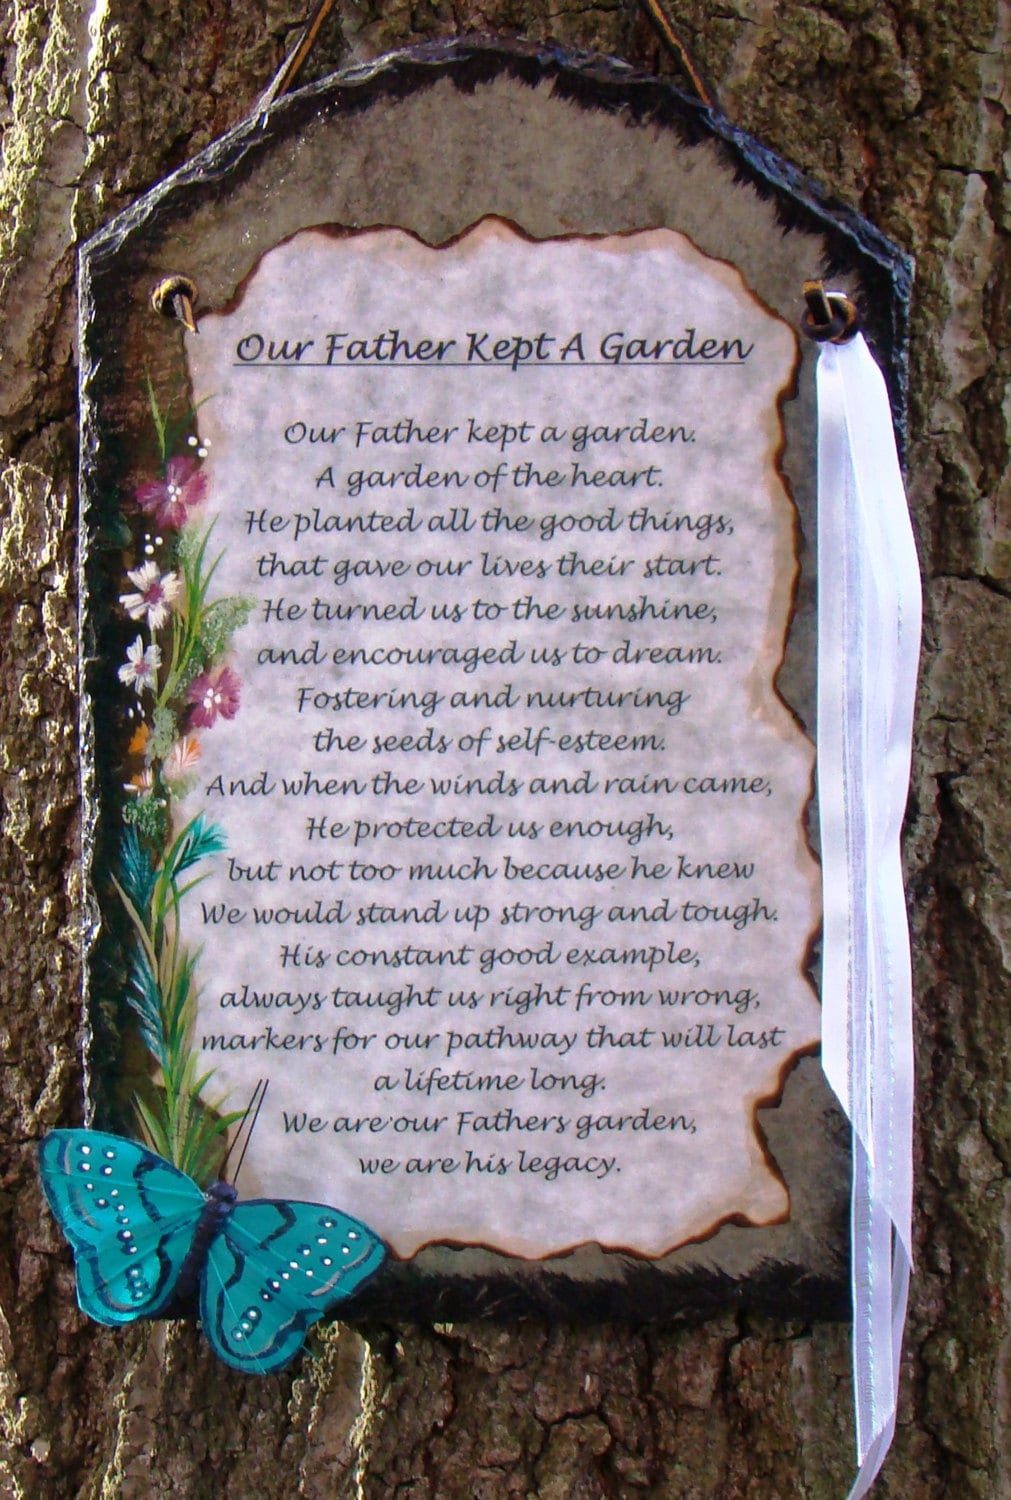 Our father kept a garden verse for dad personalized unique etsy zoom izmirmasajfo